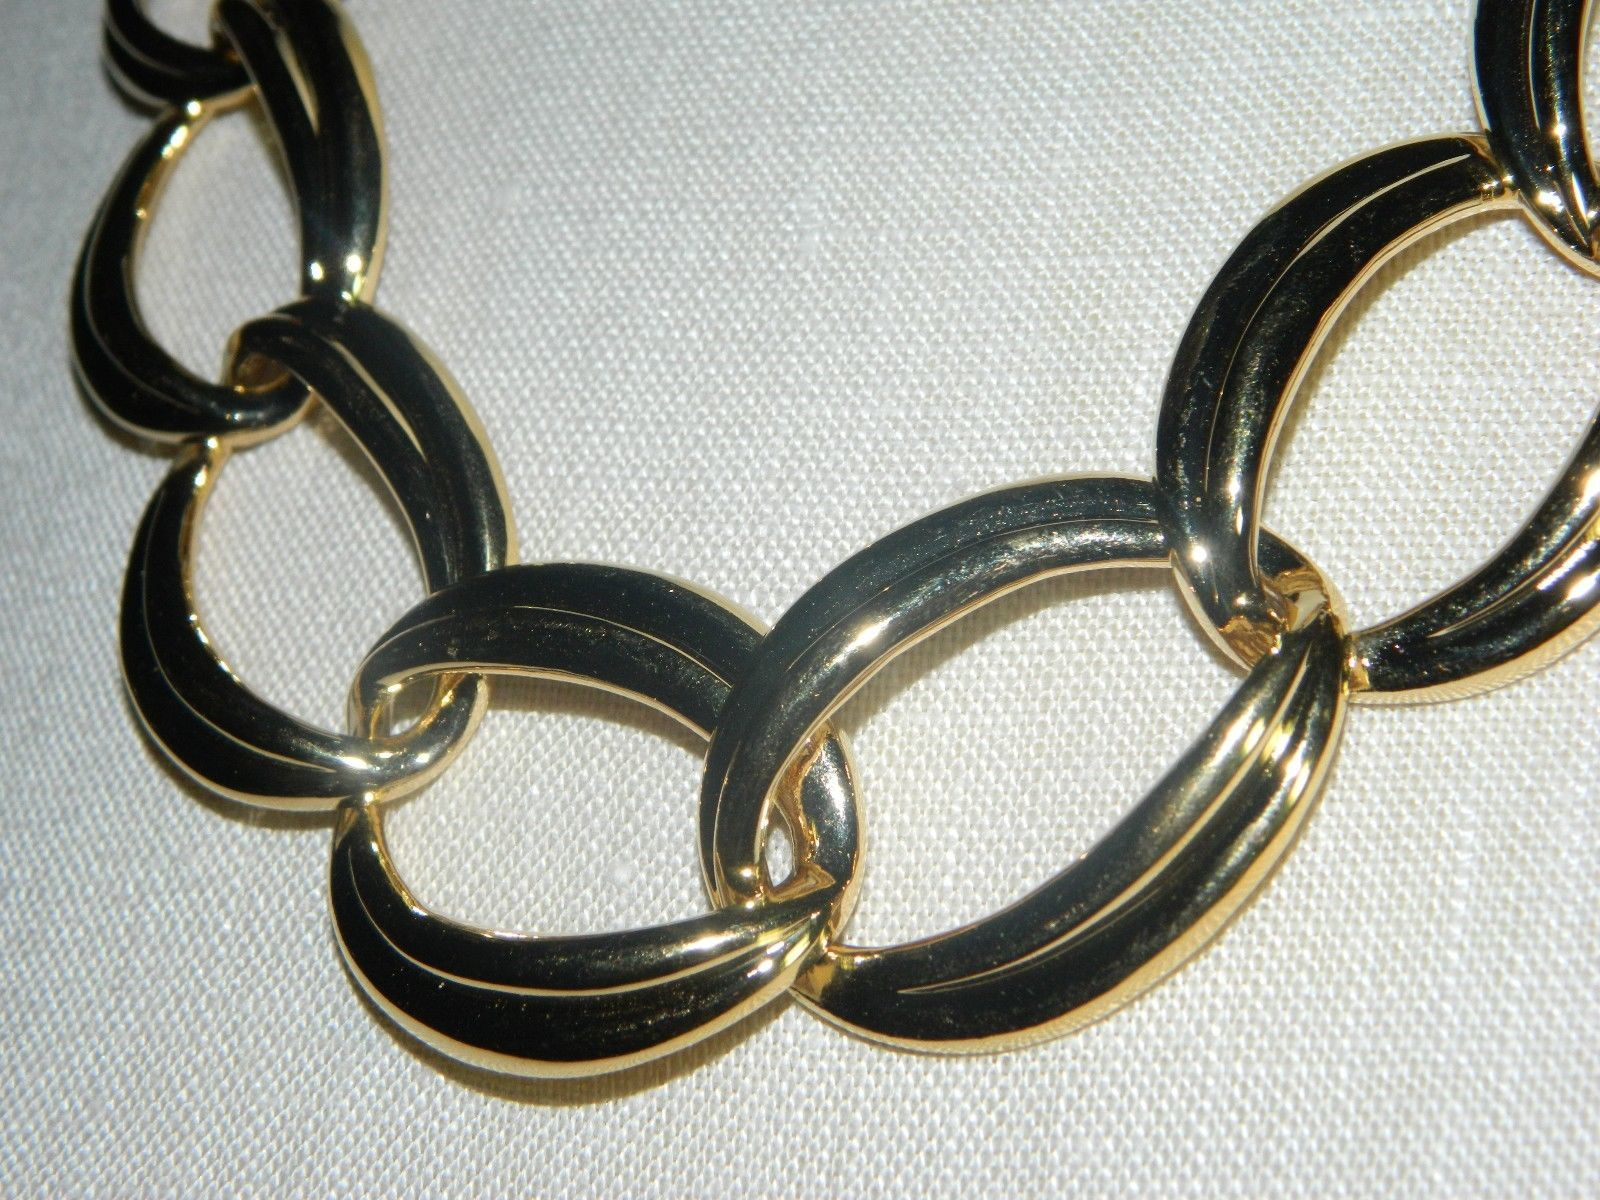 "VTG NOS NAPIER with Tags Heavy Gold Tone Chain Link Choker Necklace - 20/22"" image 3"